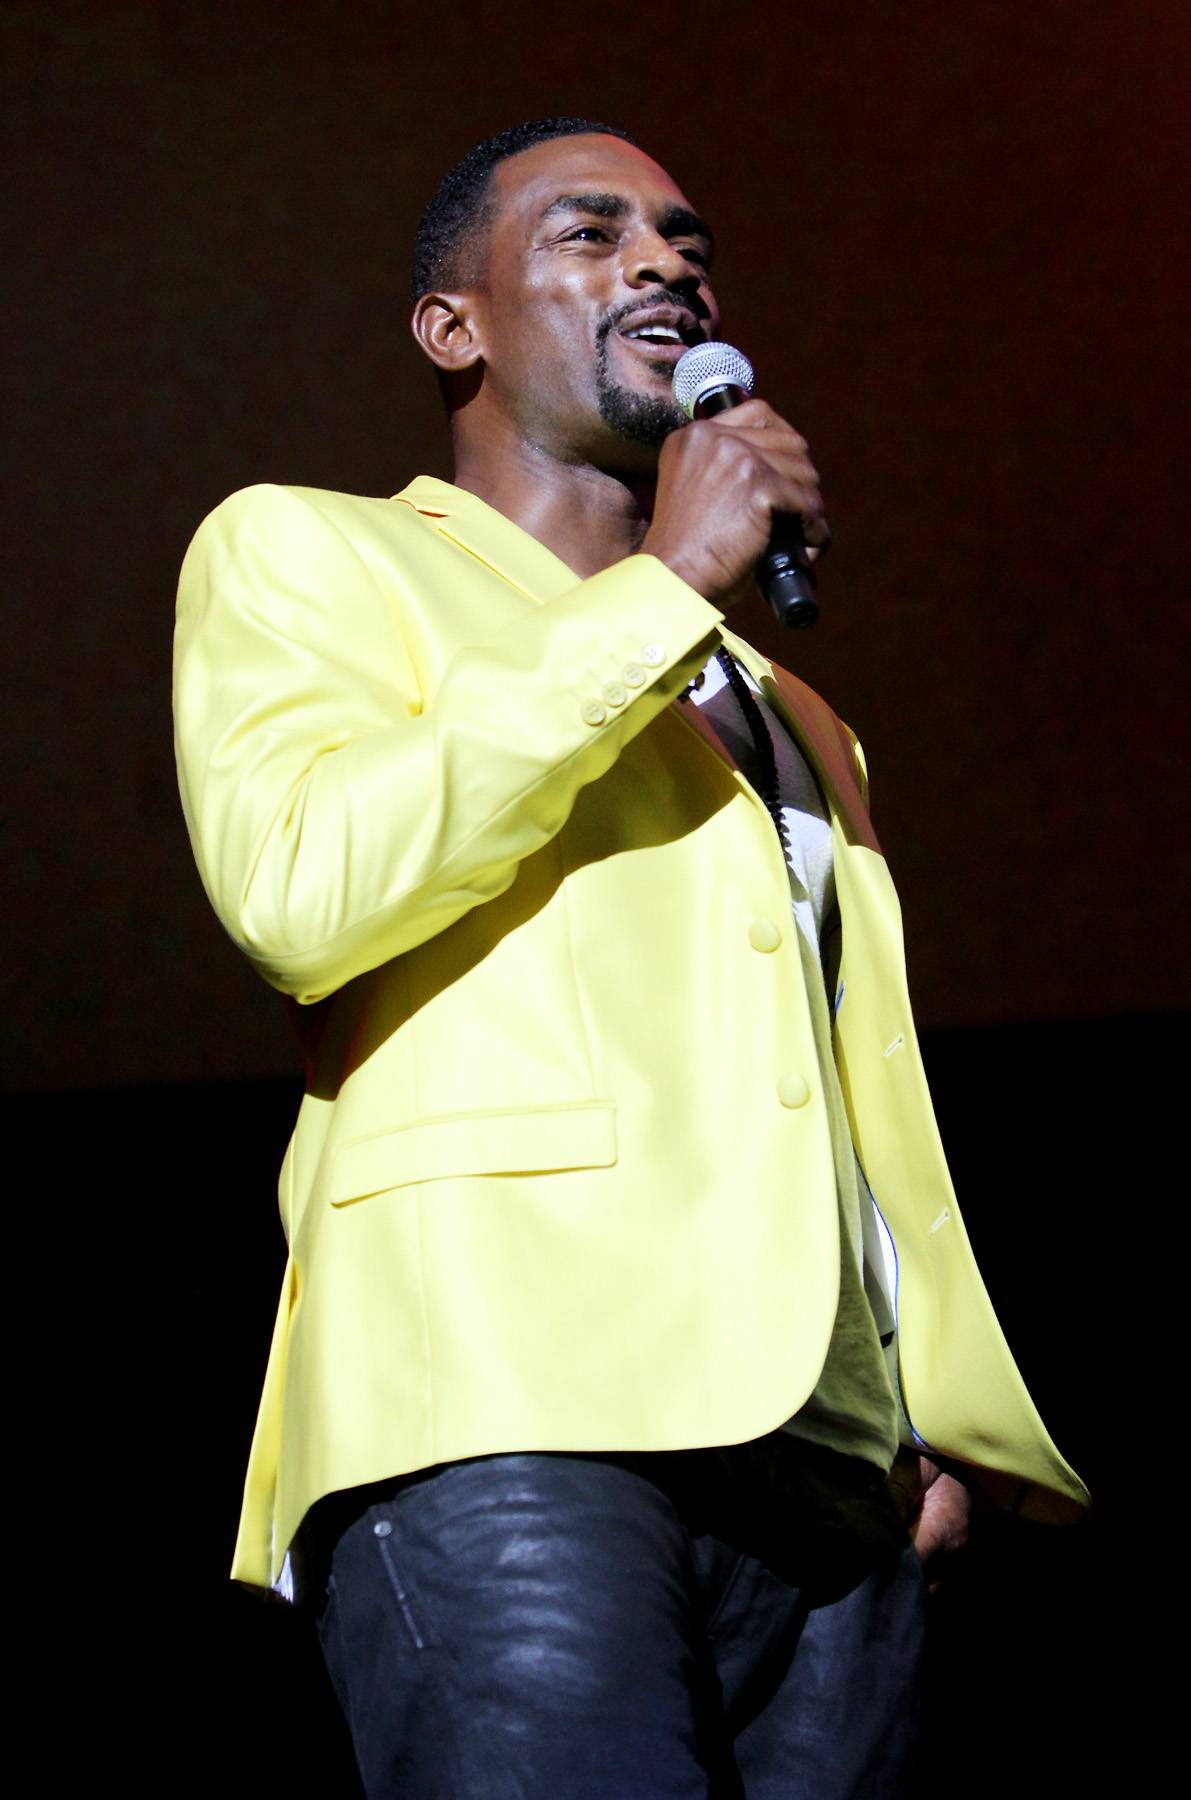 Bring in the Funny - Bill Bellamy served up some laughs in between performances.(Photo : Maury Phillips/BET/Getty Images for BET)